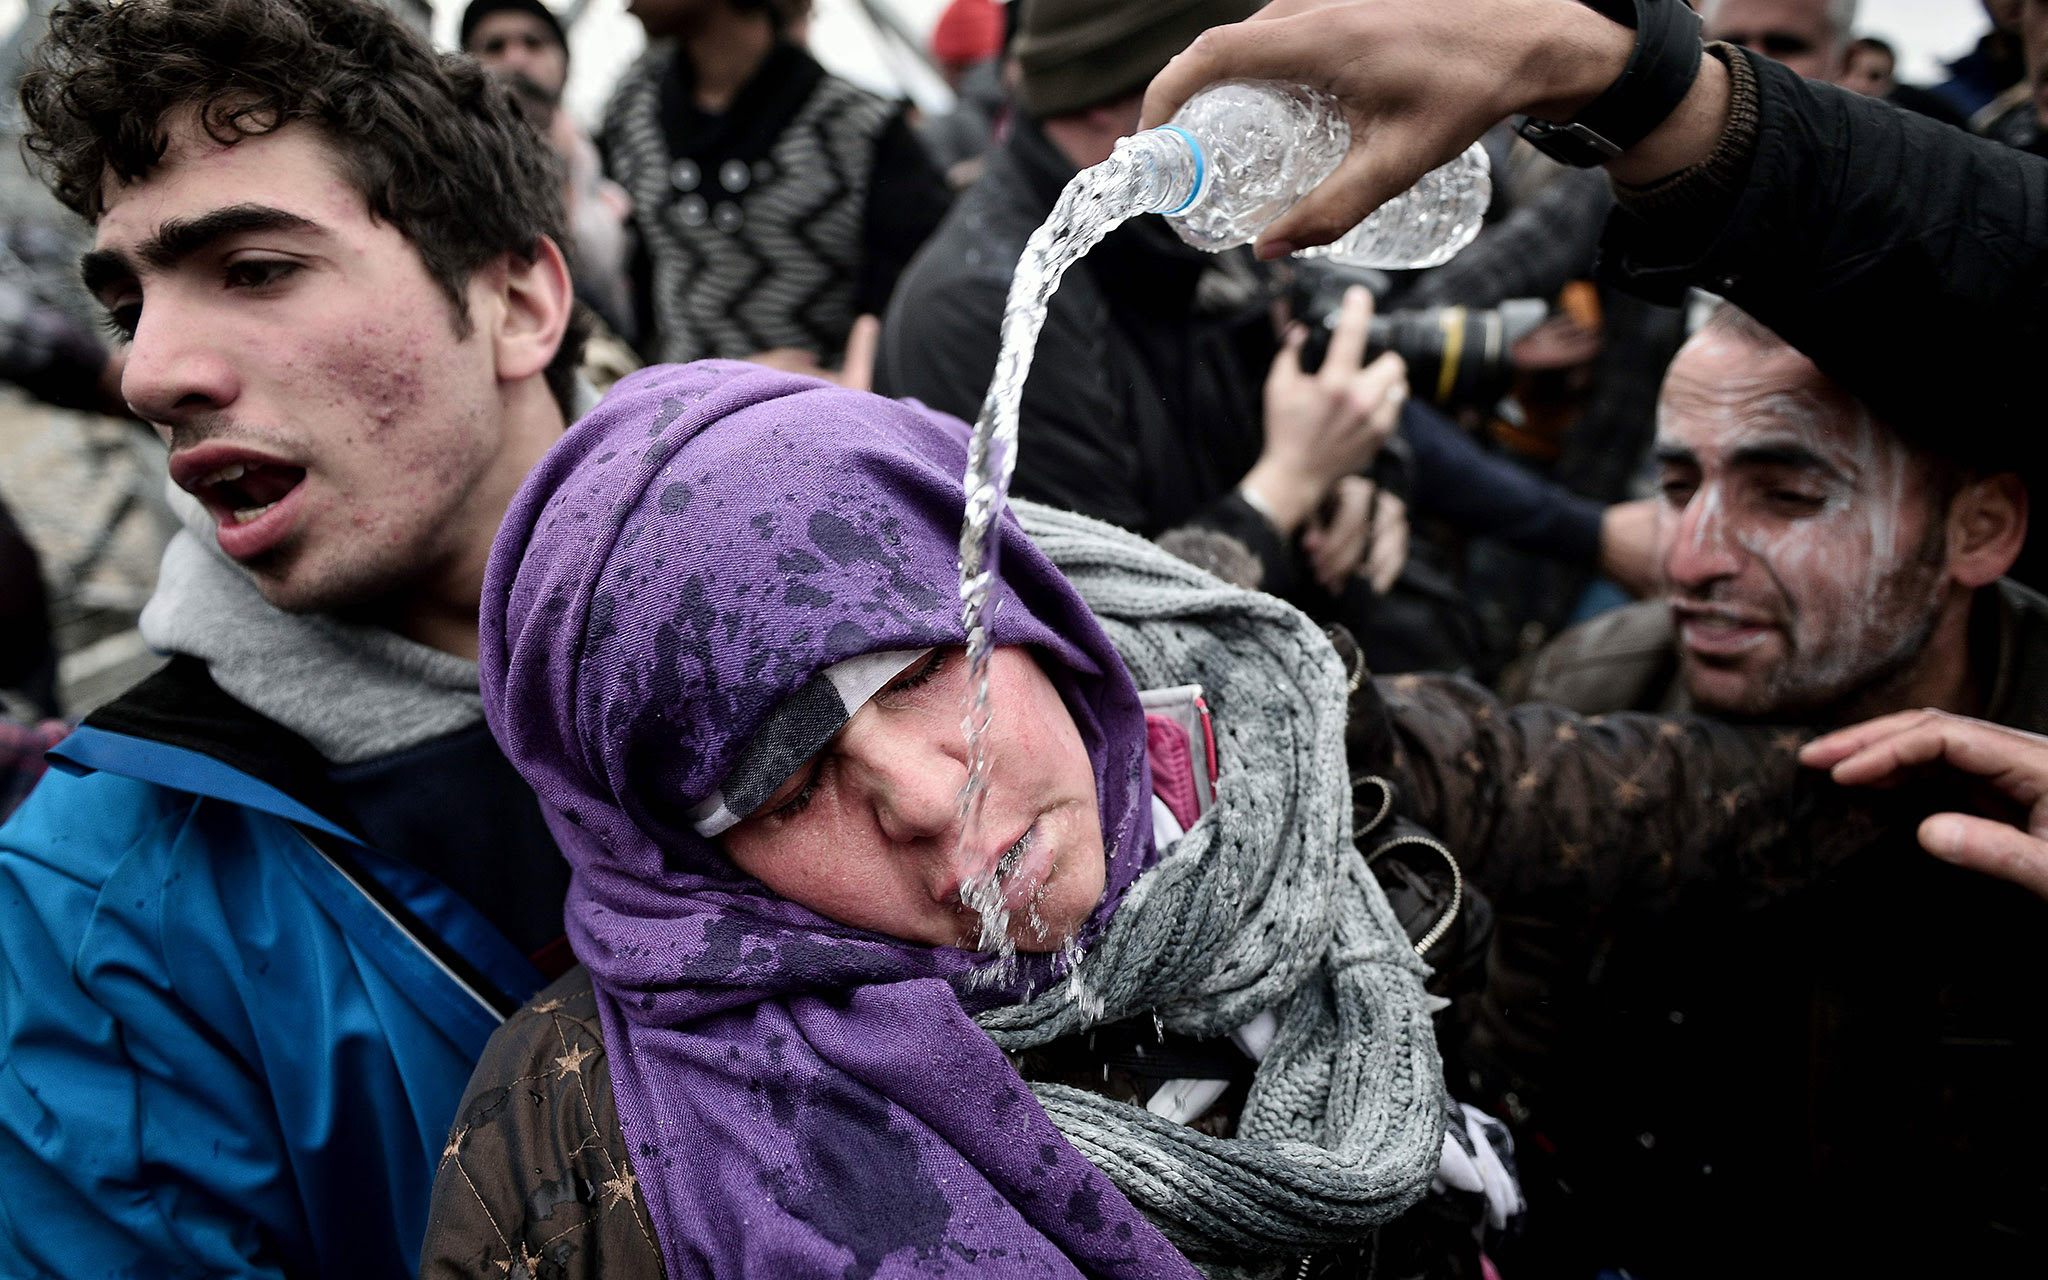 A refugee pours water over a woman who collapsed after losing her child during a mass panic after Macedonian police used tear gas against refugees at the Greek-Macedonian near the village of Idomeni.